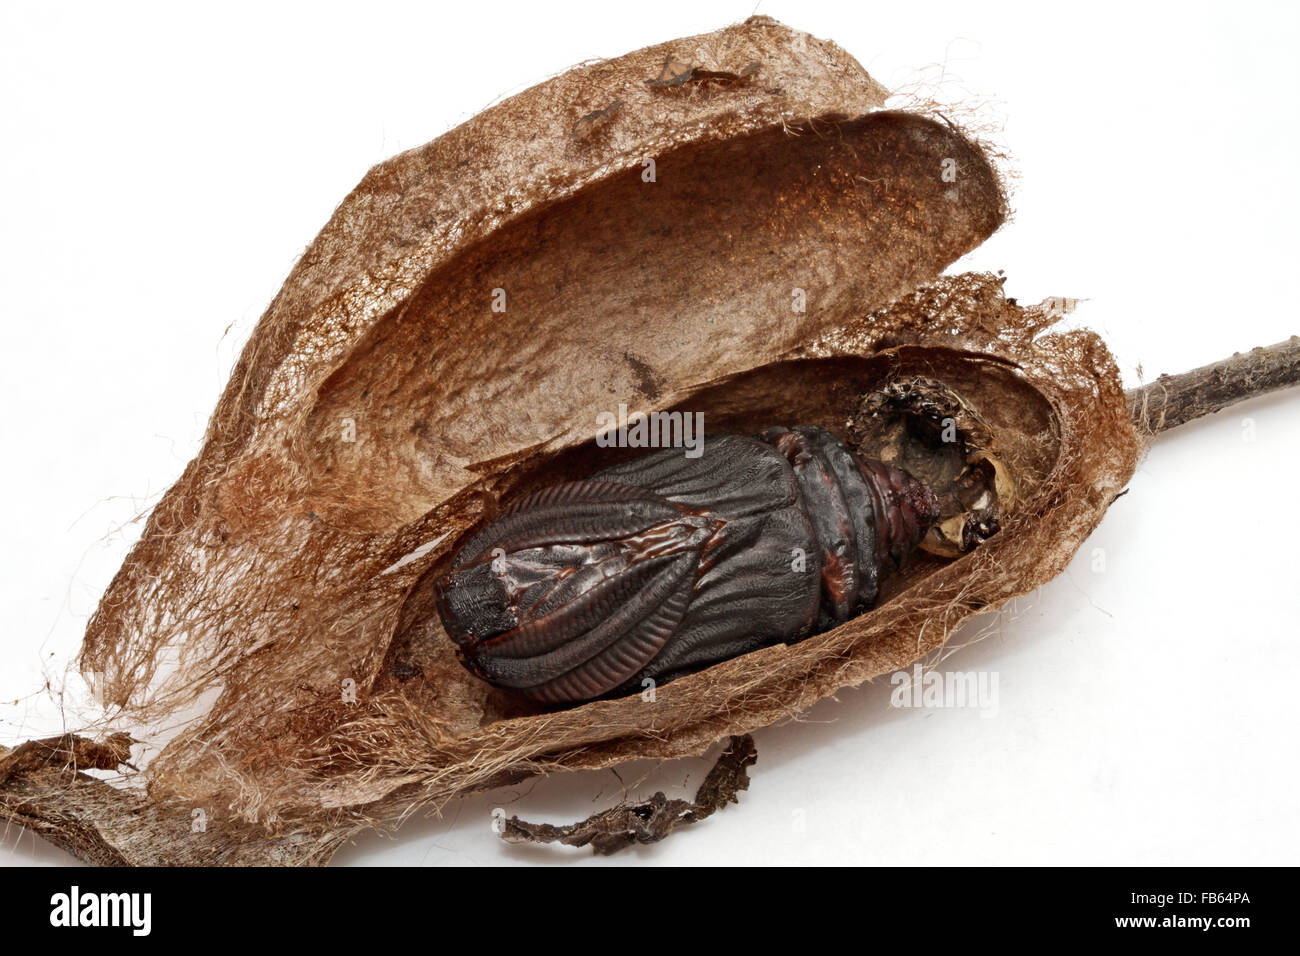 cocoon of a Cecropia moth, sliced open to reveal the exuvia (shed skin of the pupa) - Stock Image